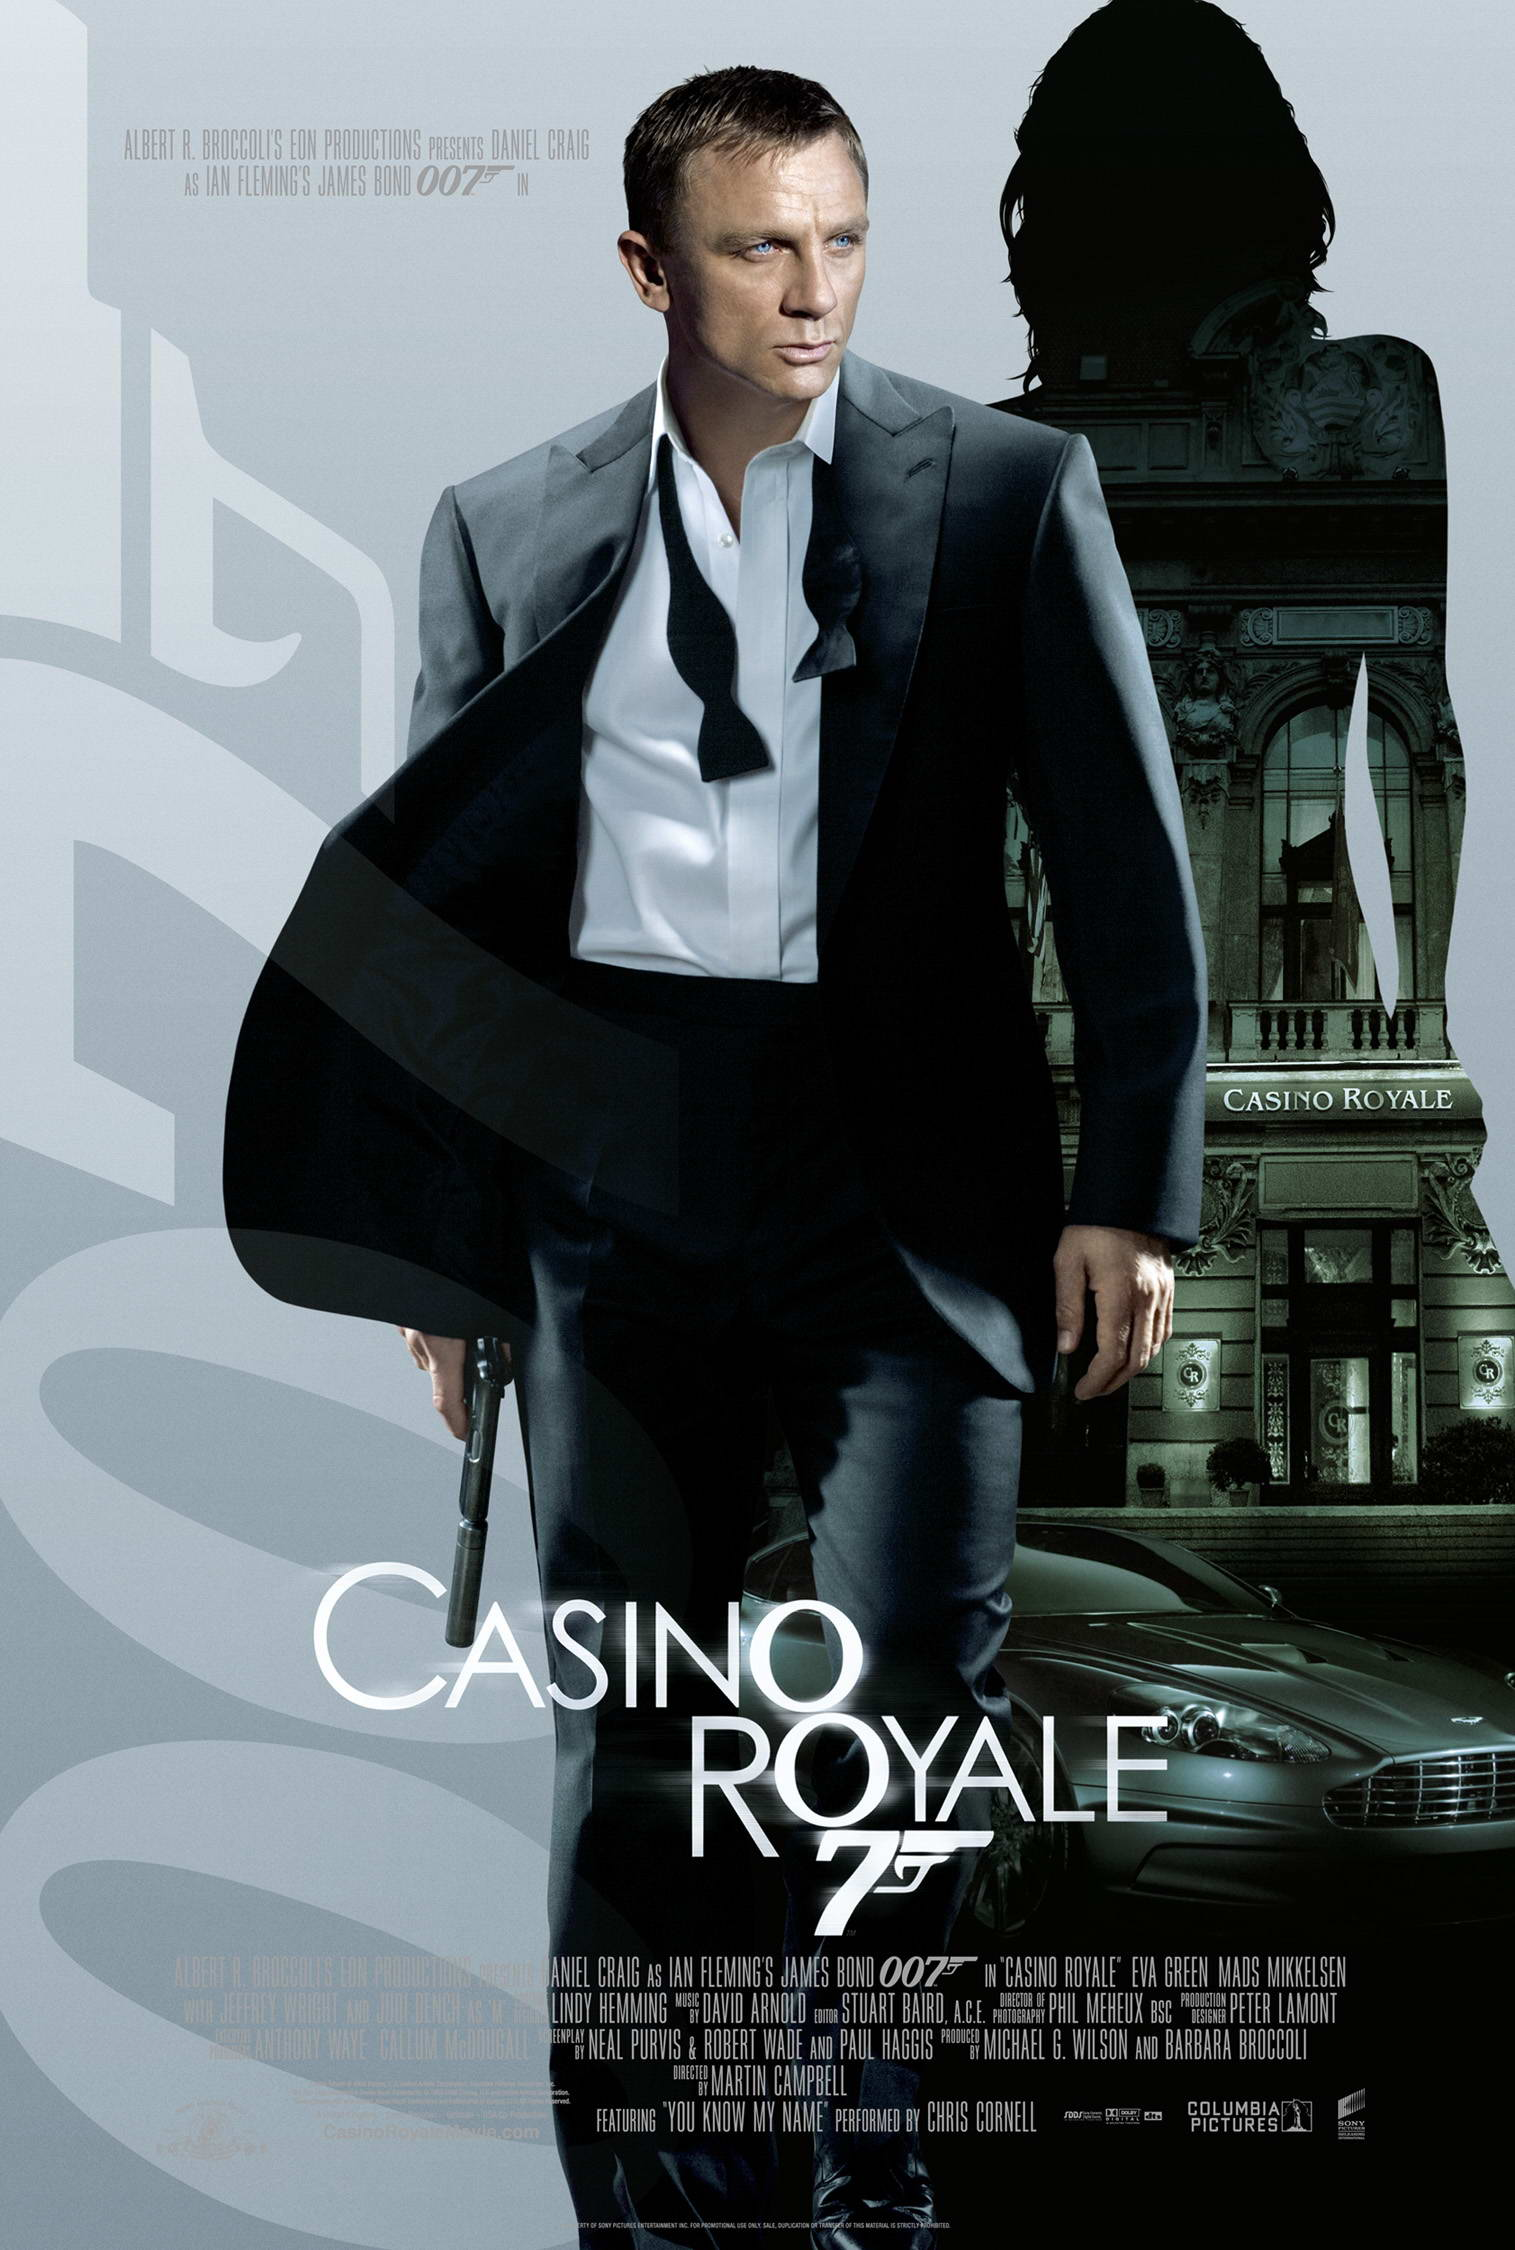 casino royale 2006 full movie online free sizing hot